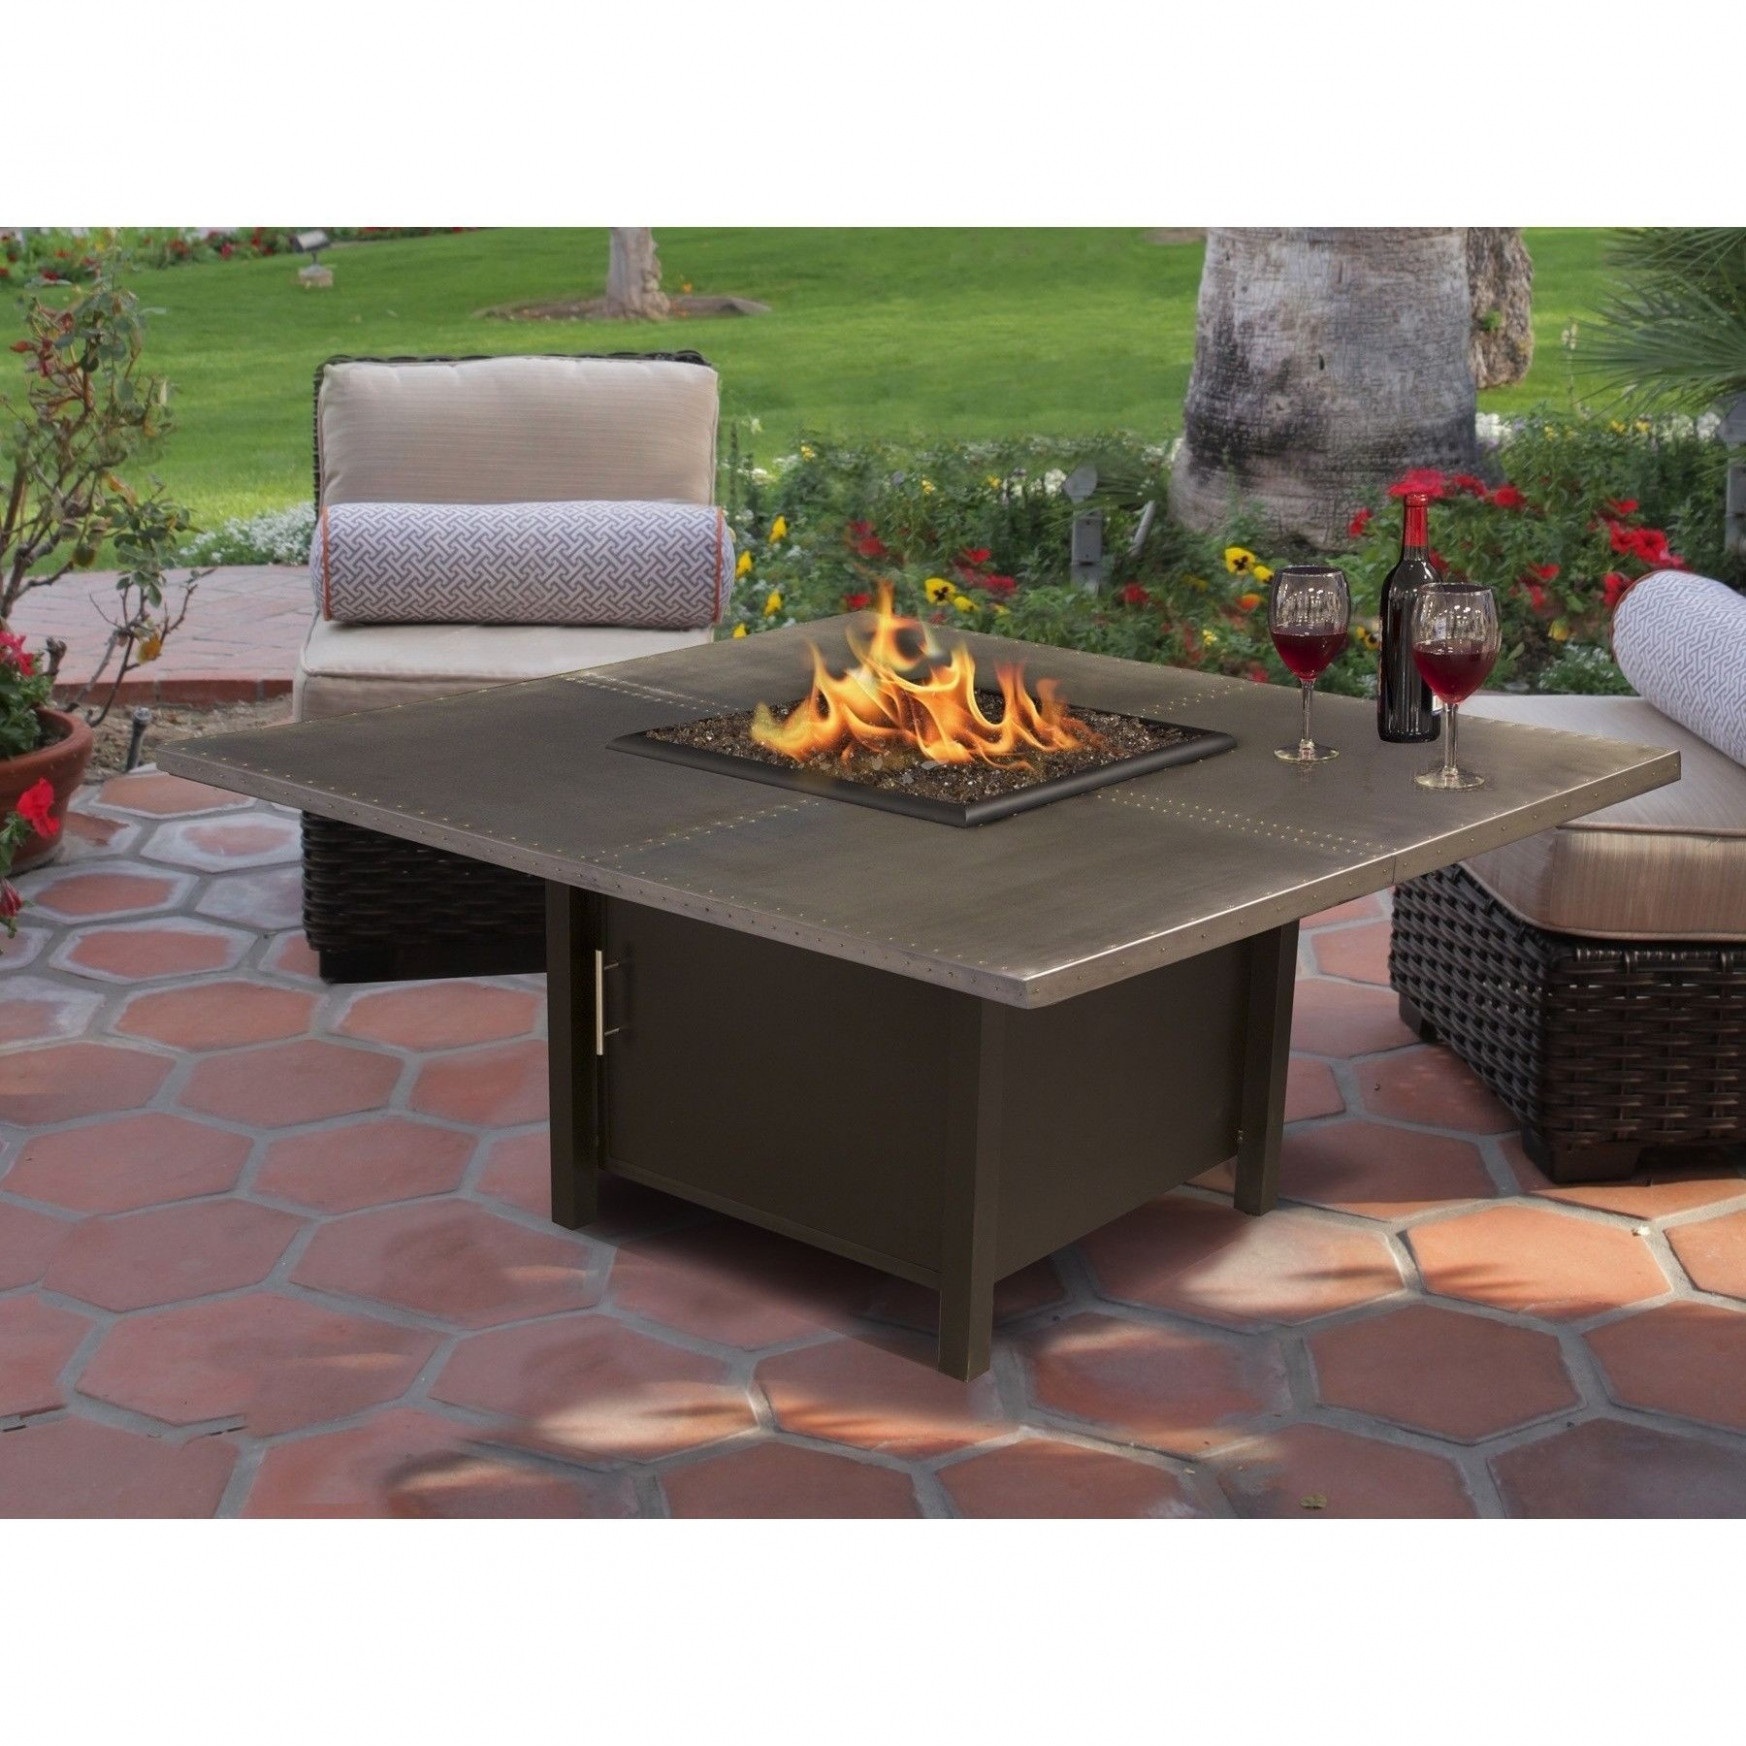 Outdoor Patio Gas Fireplace Luxury Gas Patio Fire Pit New Metal Patio Tableca Round Outdoor